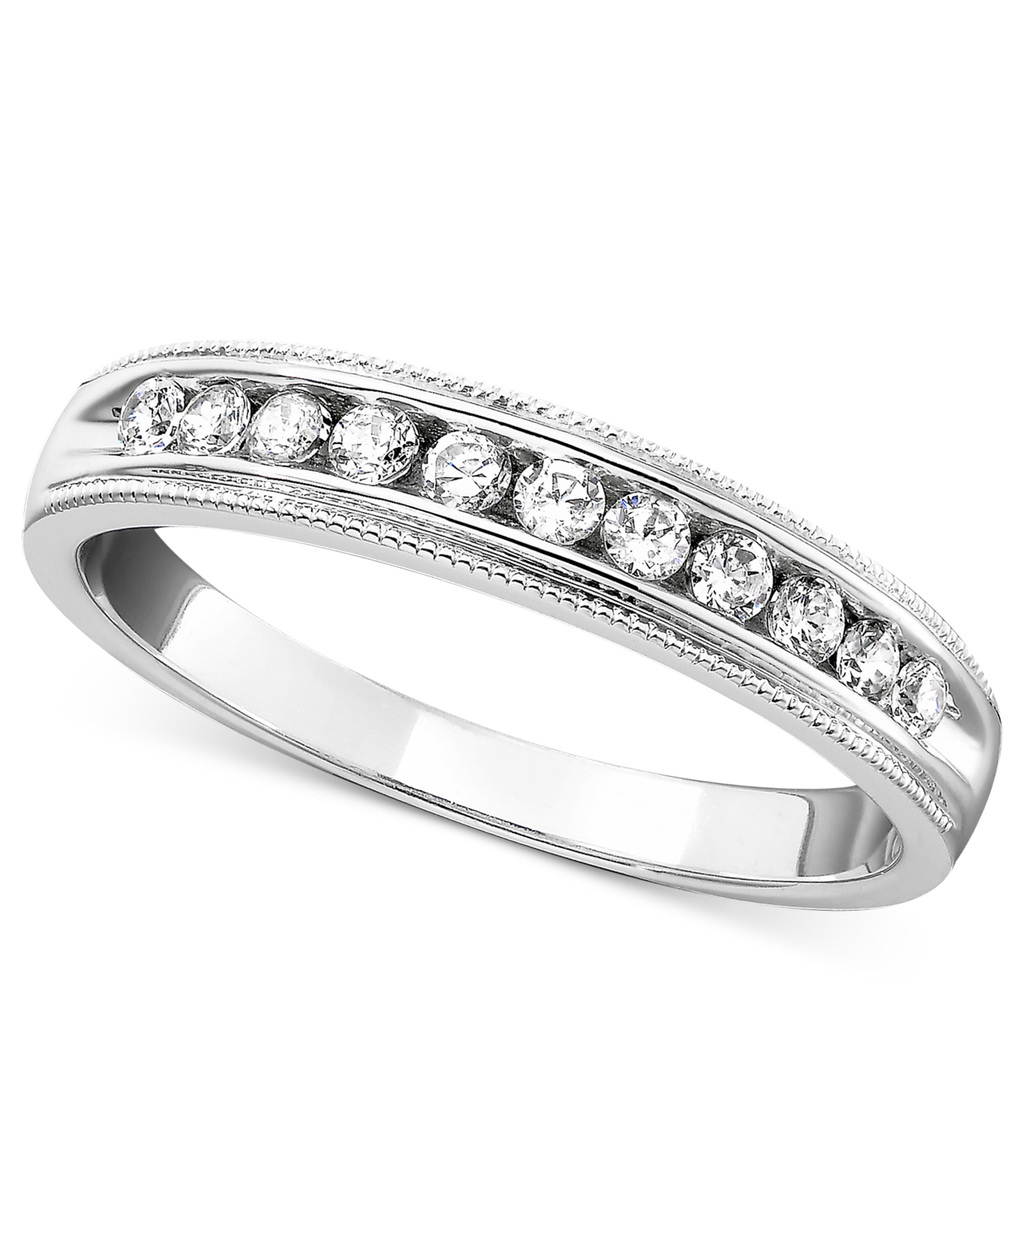 White Gold Milgrain Edging Wedding Ring MGCB25W